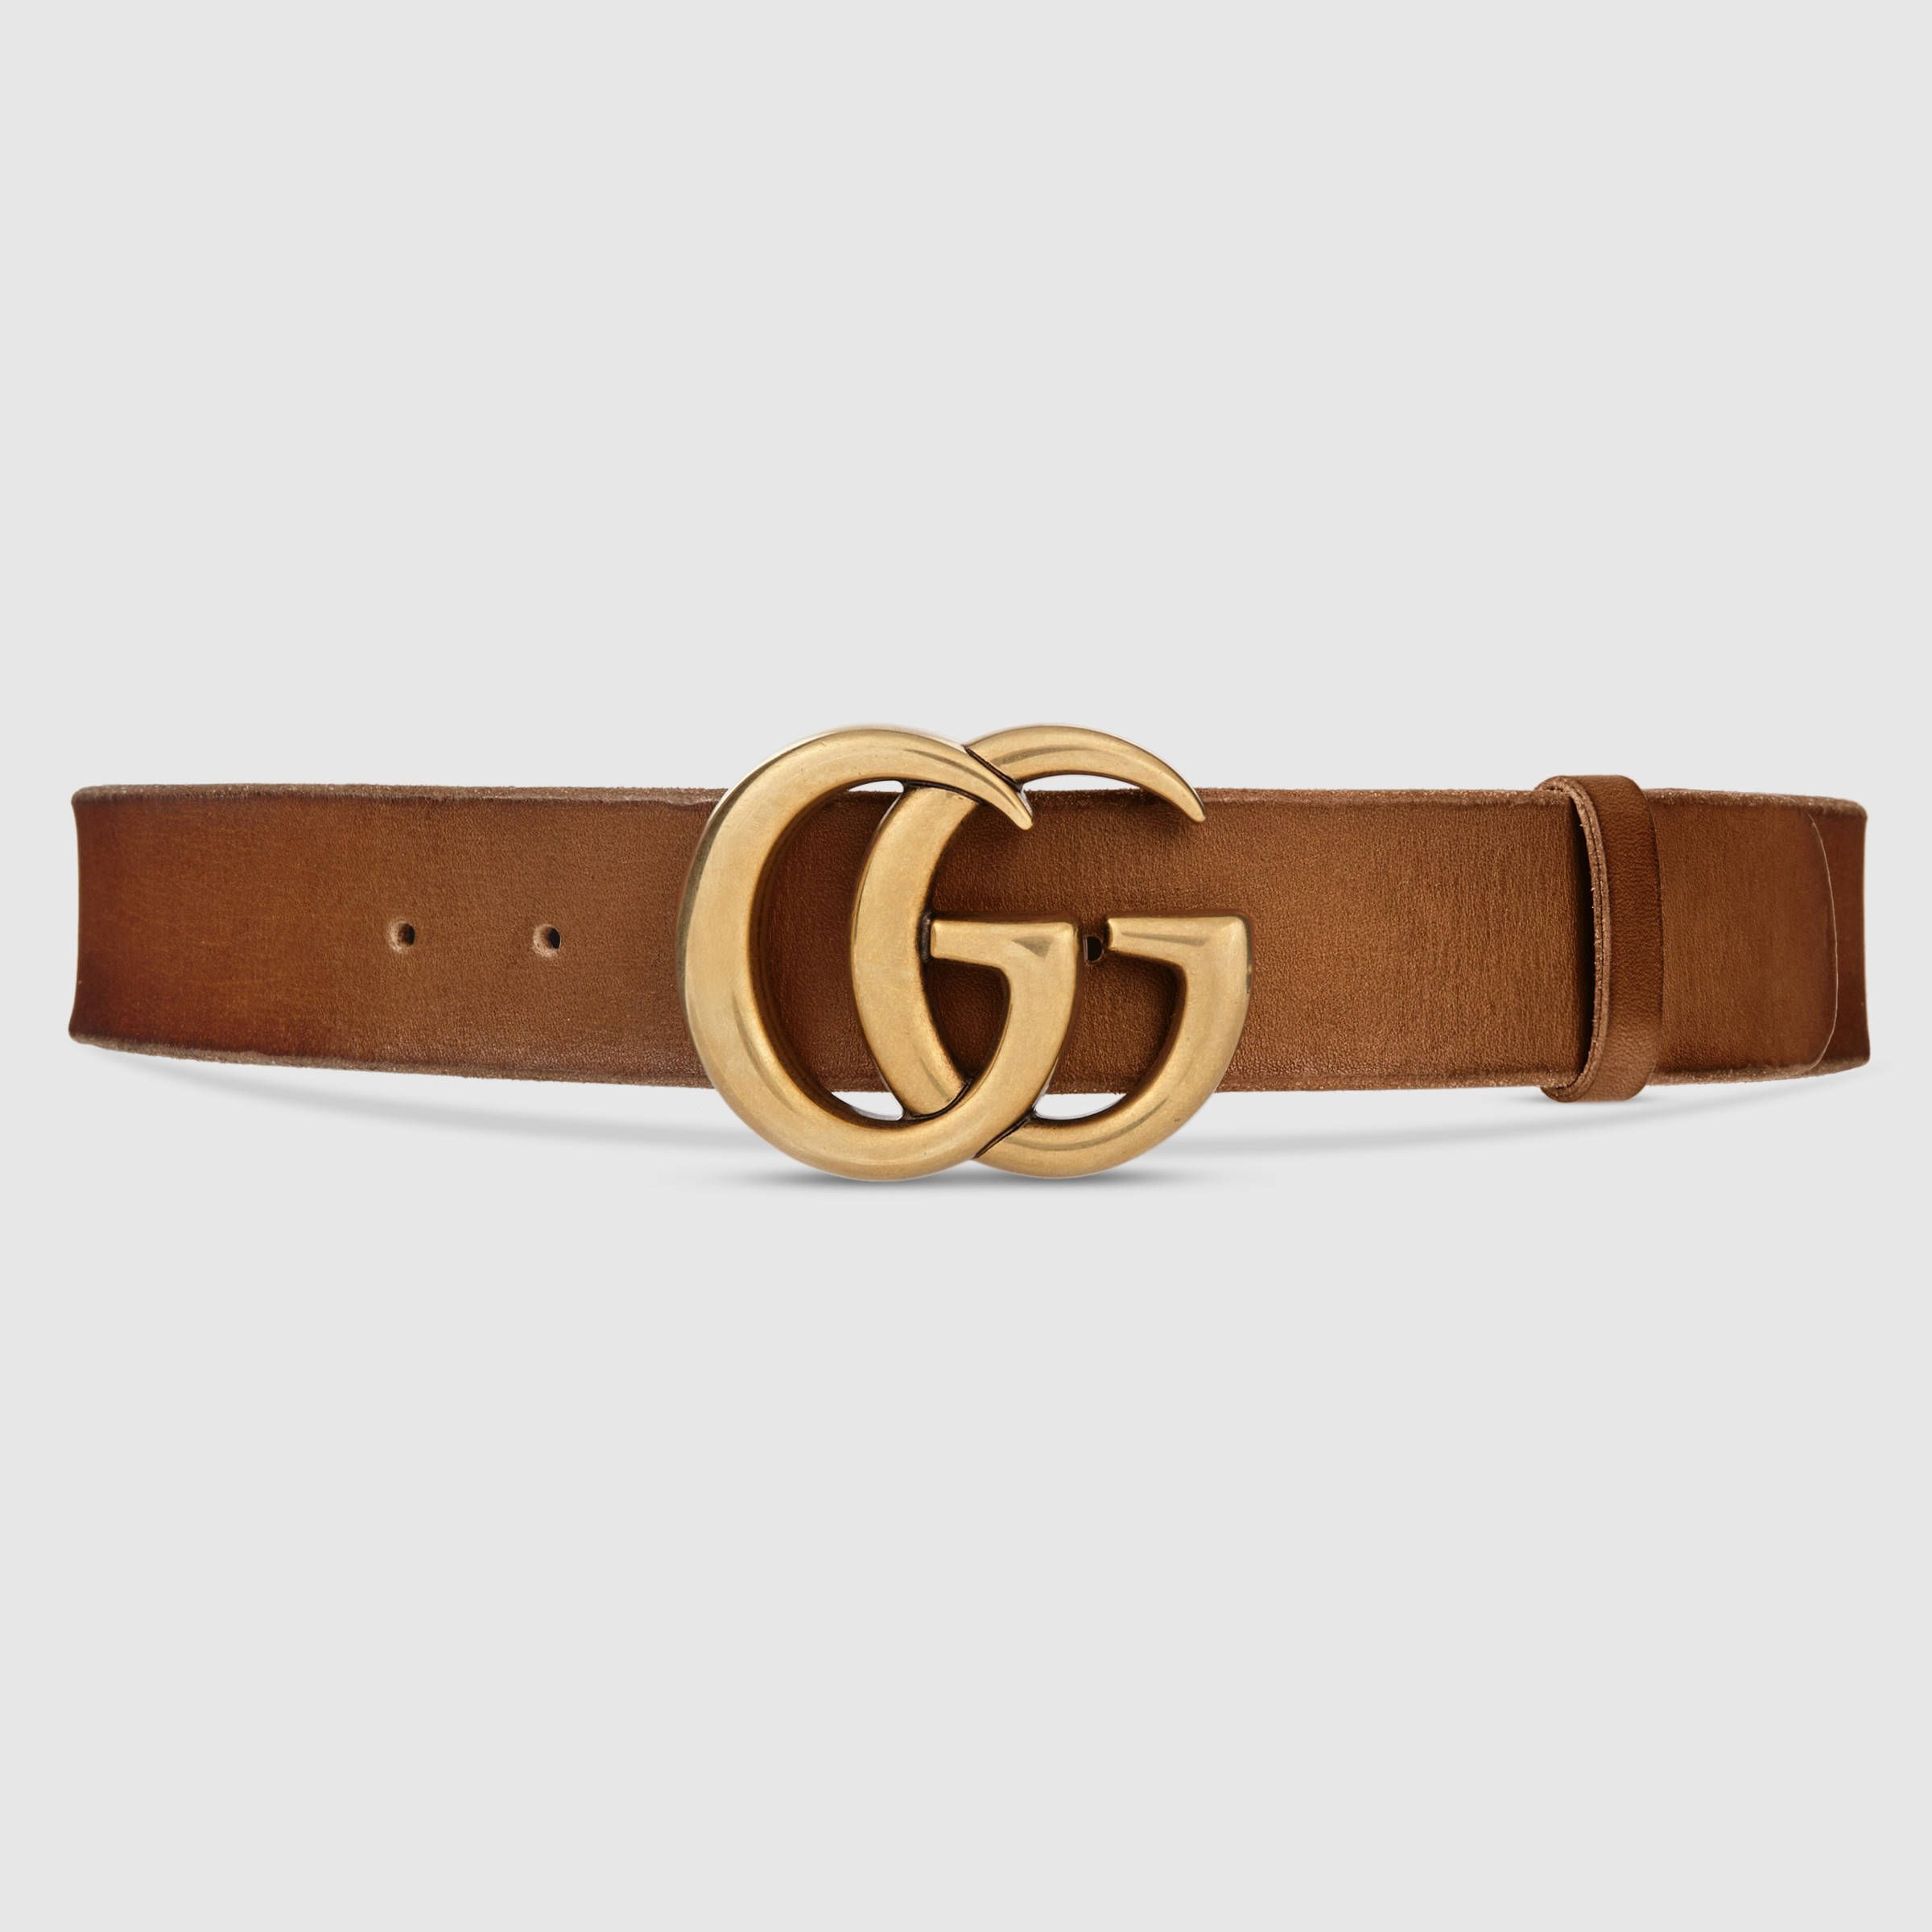 274b59ada73 Gucci Women - Gucci Brown Leather belt with double G buckle -  420.00